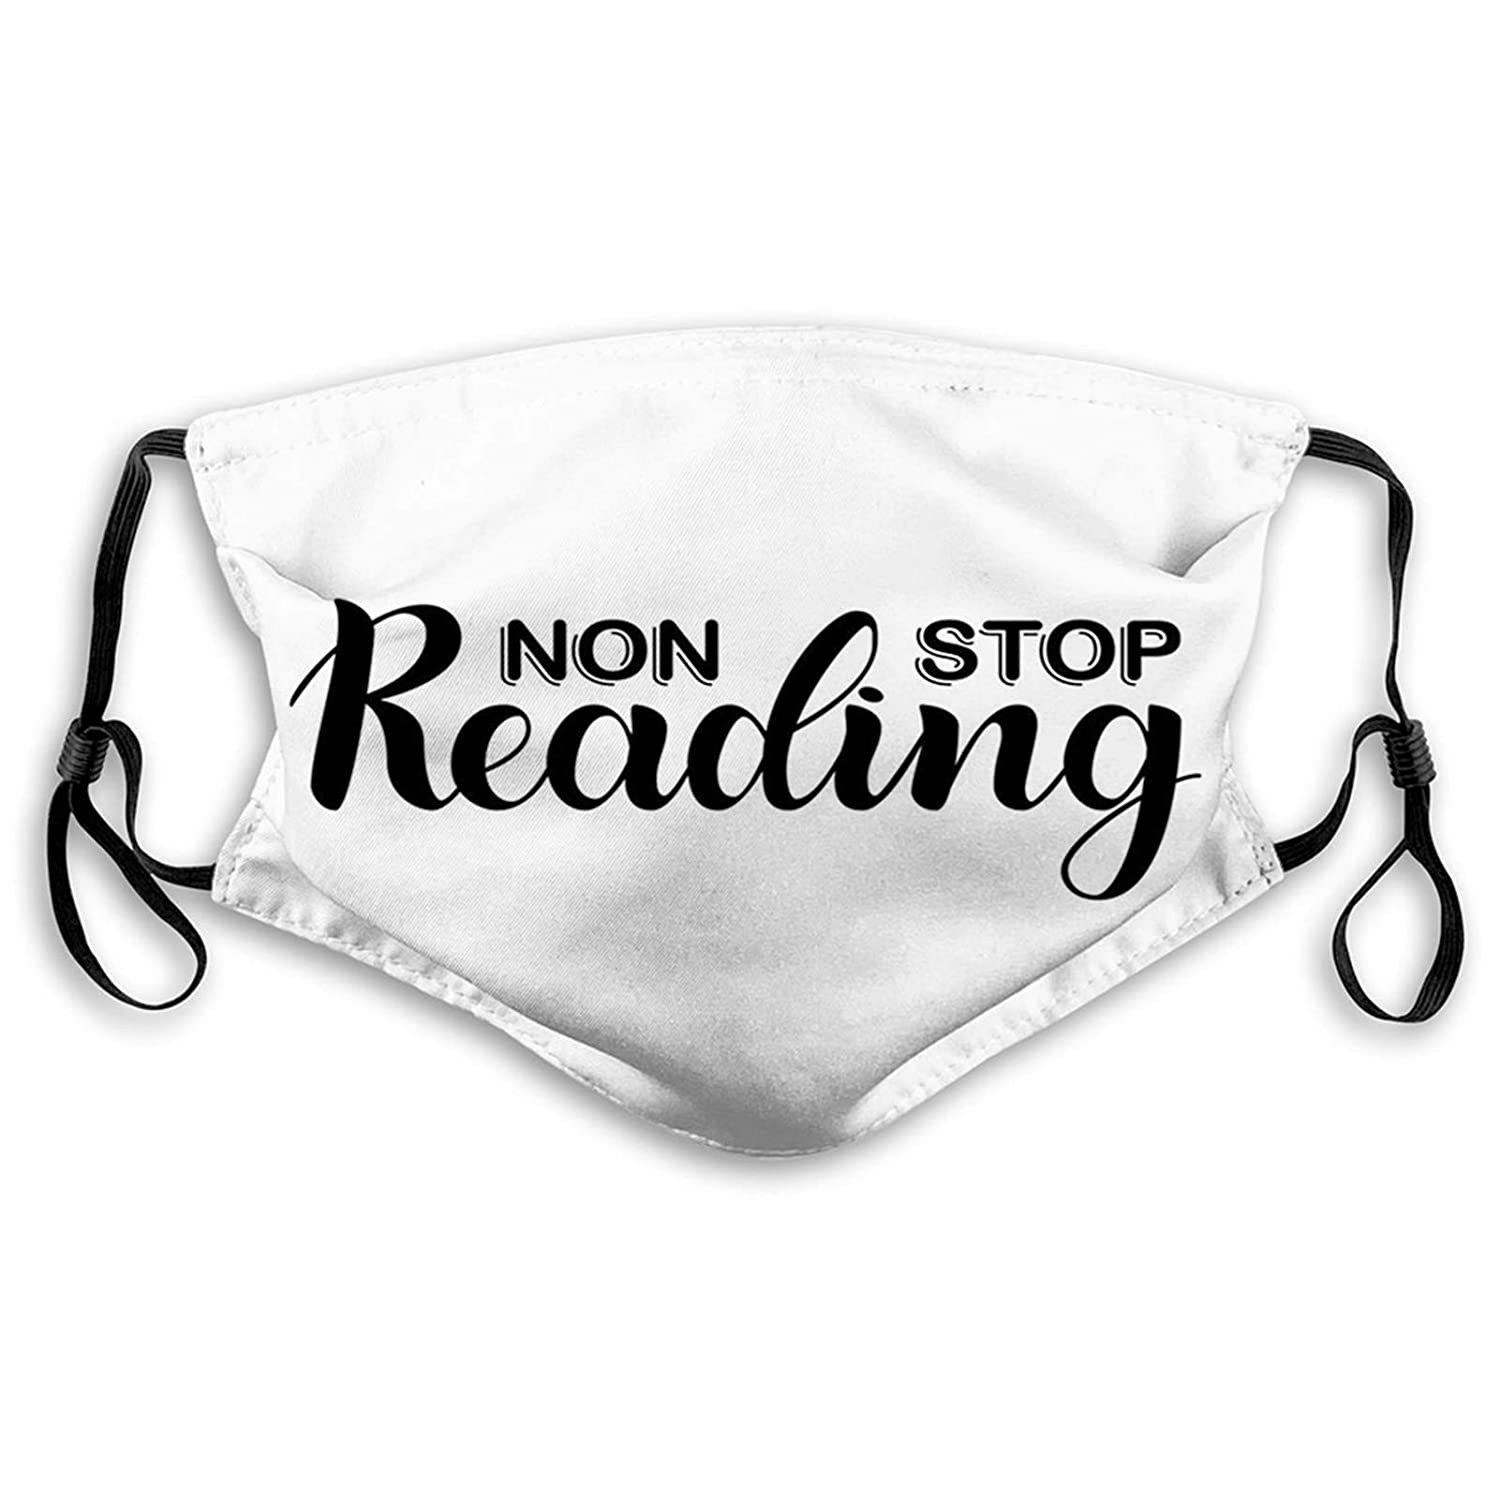 Comfortable Funny Mask Book Non Stop with 1 year warranty Bargain sale Phrase Hand Reading Pa